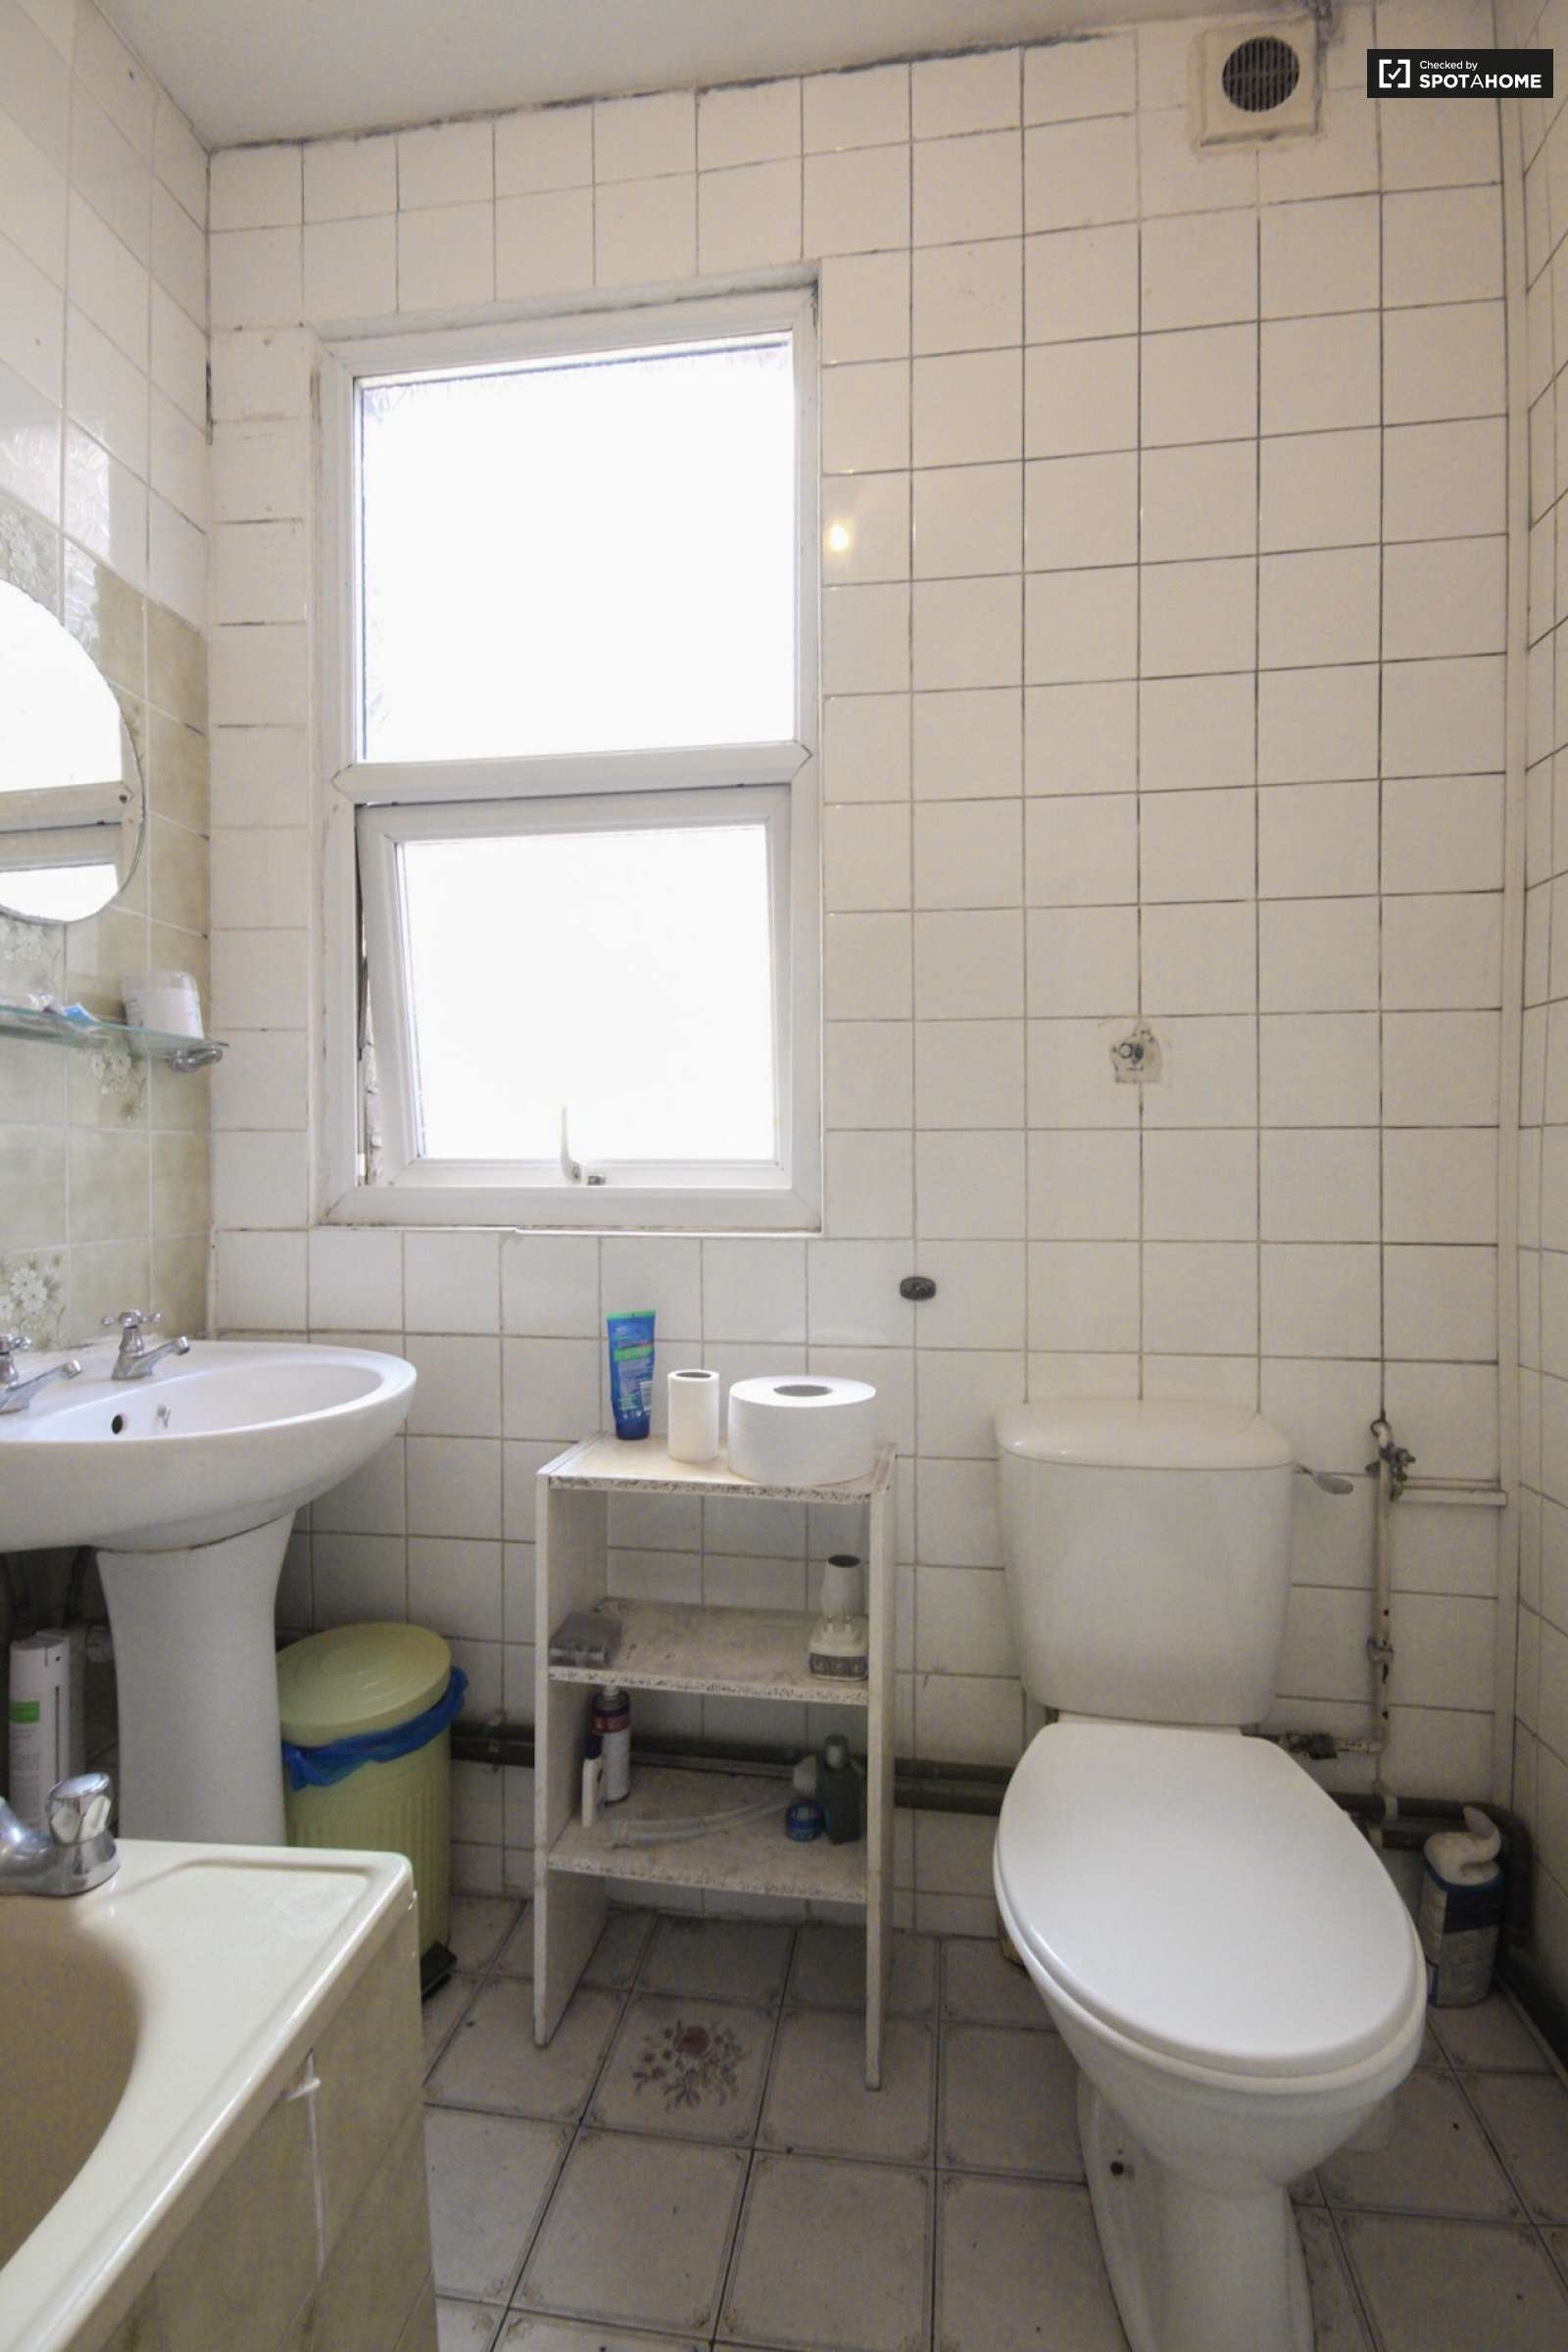 Light Room In Cool 7 Bedroom Flat In Wood Green London Ref 143367 Spotahome